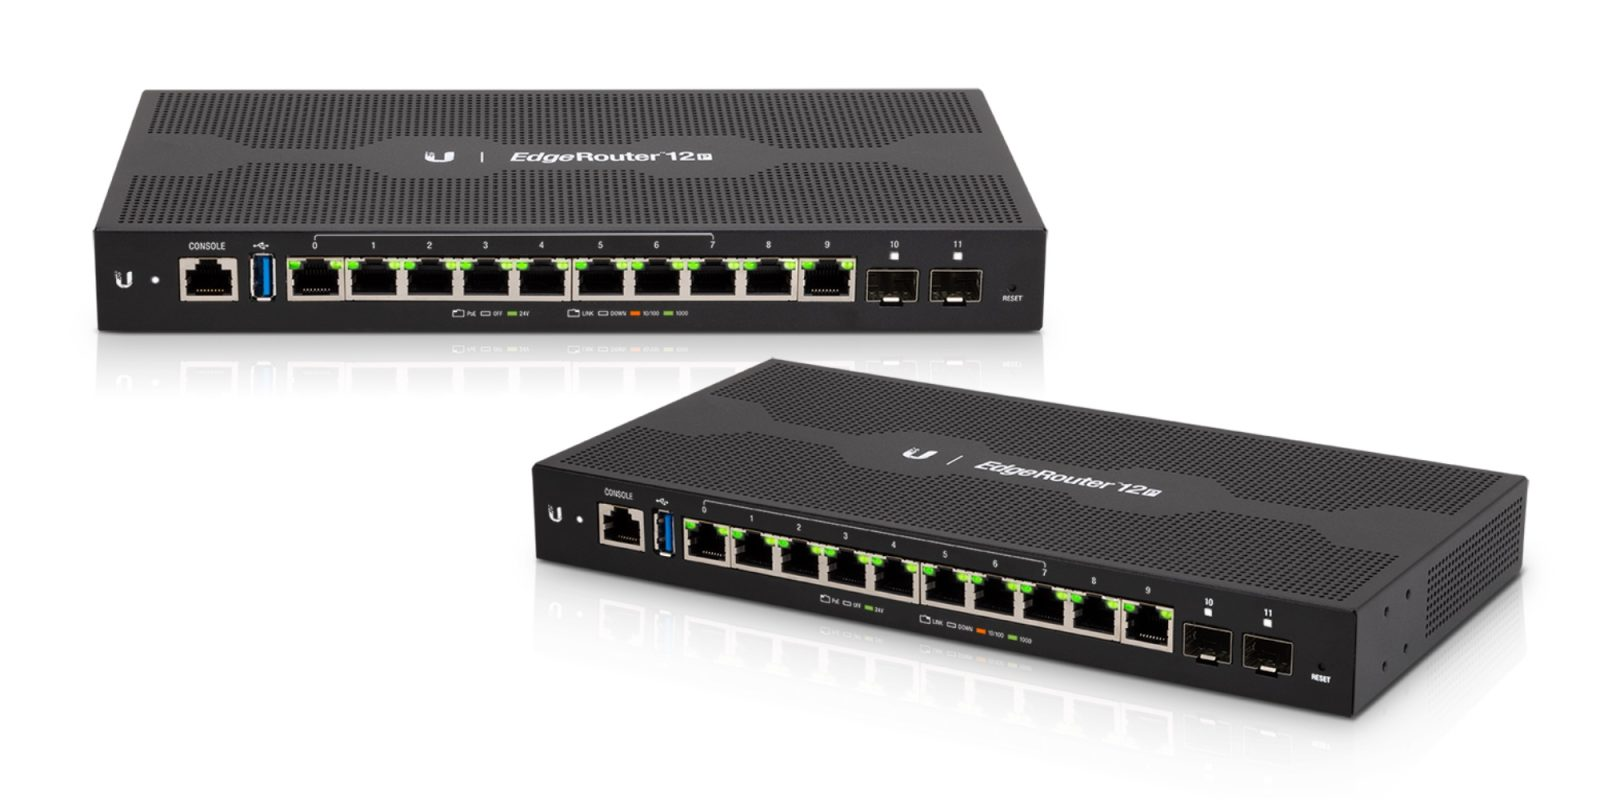 Ubiquiti refreshes EdgeMax lineup with new POE-enabled EdgeRouter 12P